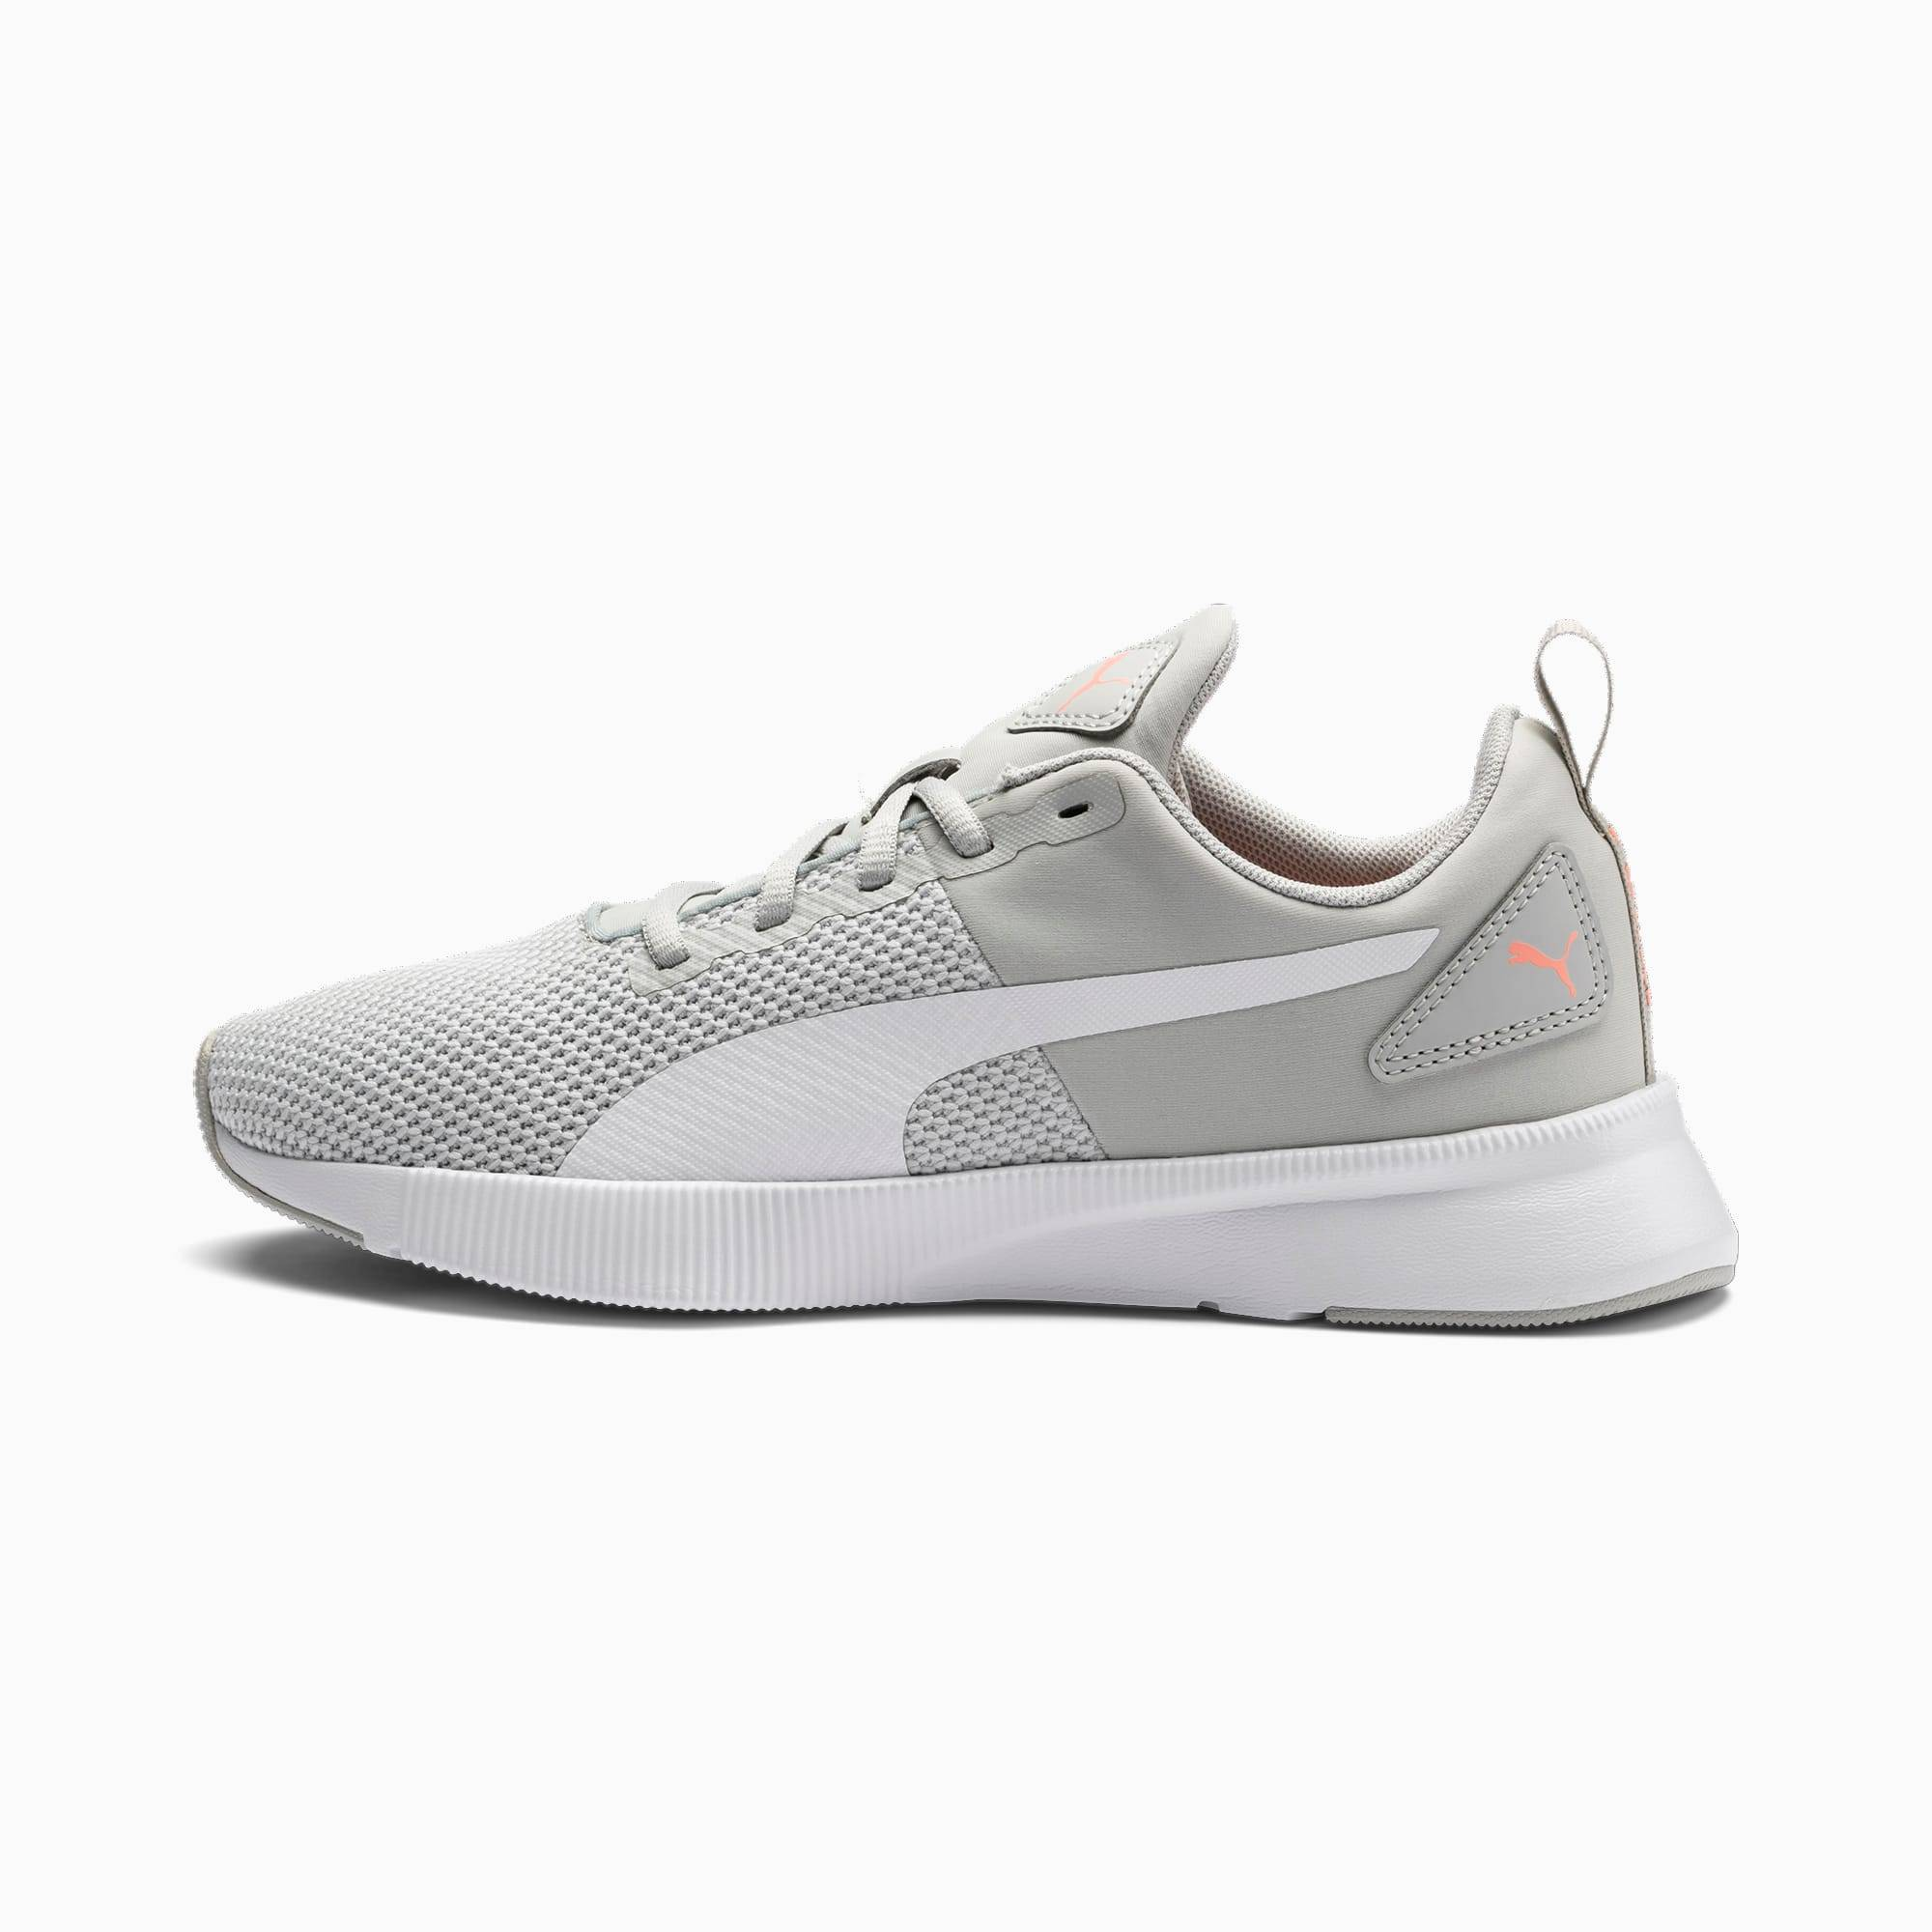 PUMA Chaussure de course Flyer Runner, Blanc/Rose/Gris, Taille 39, Chaussures